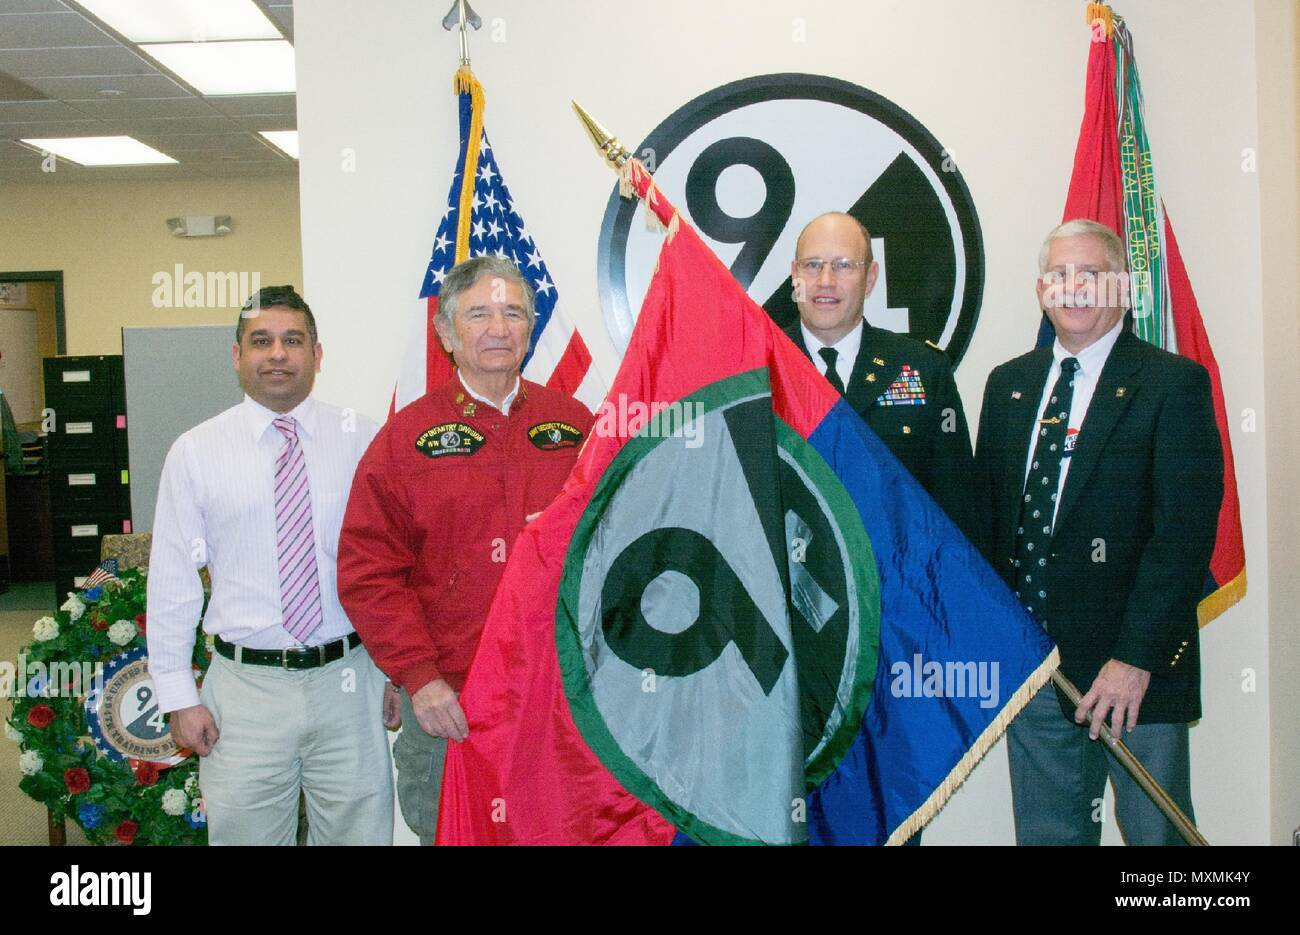 (Left to right) 94th Training Division Chief Executive Officer Vivek Kshetrapal, 94th Infantry Division Historical Society Secretary John Clyburn, 94th Training Division Assistant Division Commander Col. John Aarsen, and 94th IDHS Immediate Past President Bill Van Sant participate in the flag transfer held at Fort Lee, Virginia, Nov. 21, 2016. The 94th IDHS passed their World War II colors to the current 94th Training Division at the division's headquarters. - Stock Image